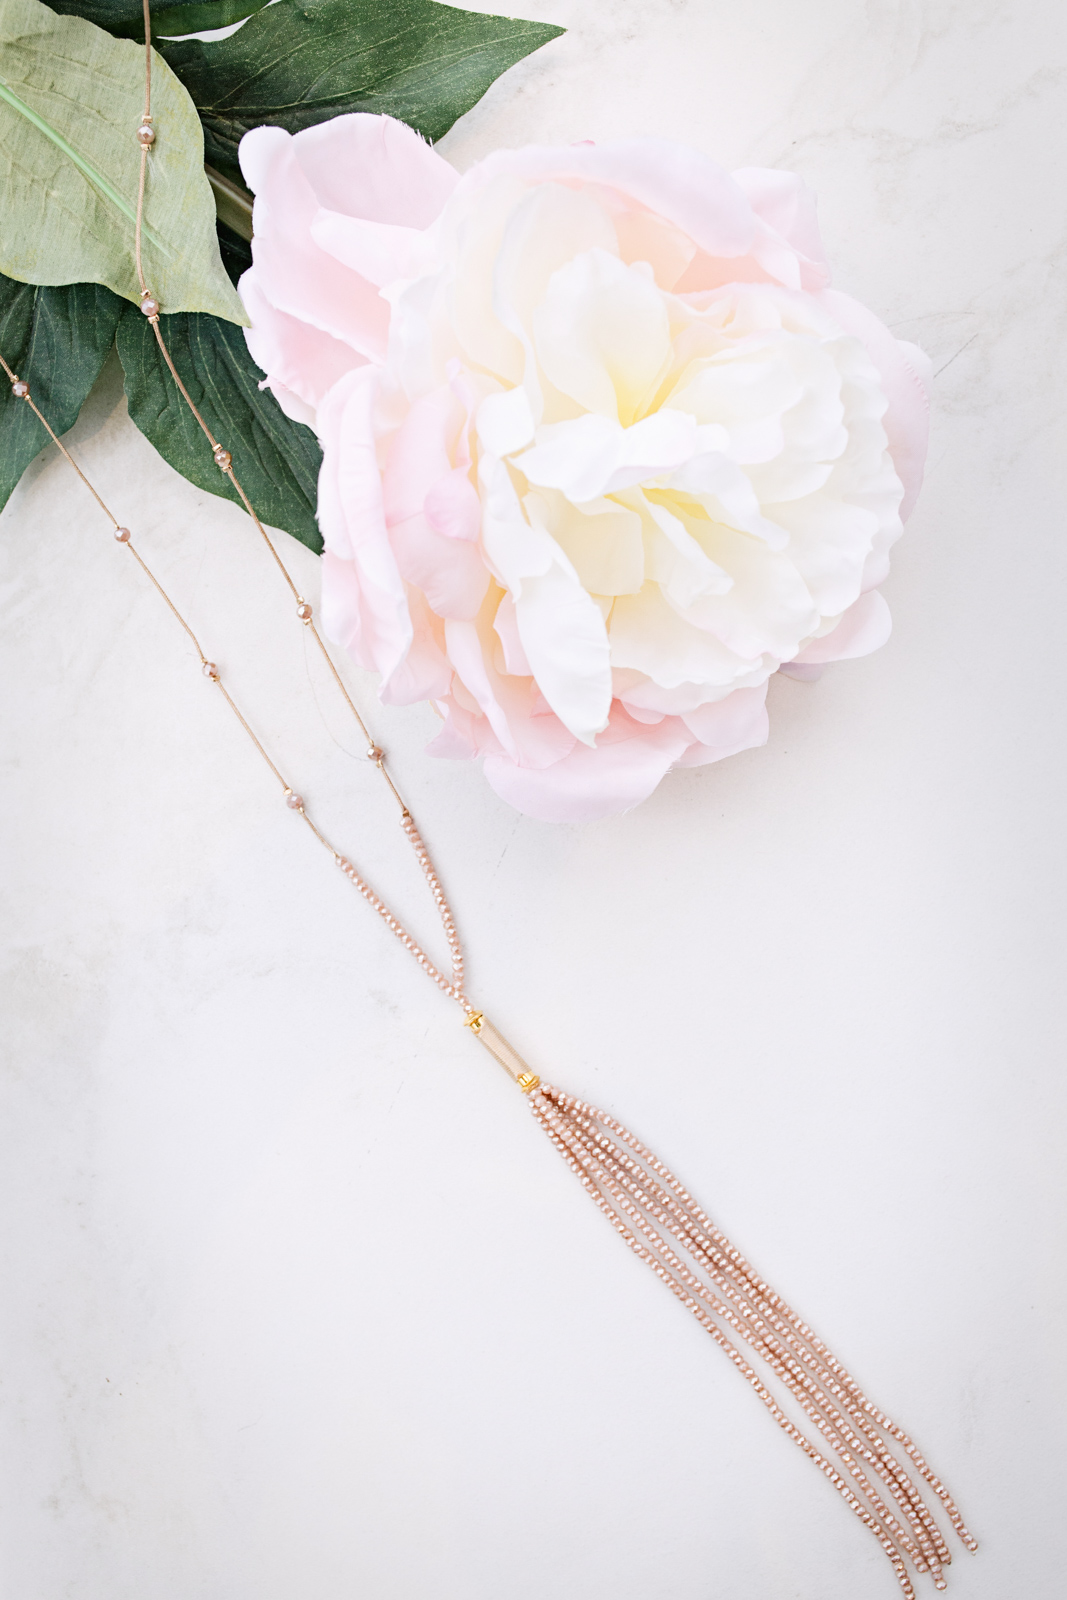 Meadow boutique seattle retail clothing store Yuliya Rae photography branding services-8.jpg